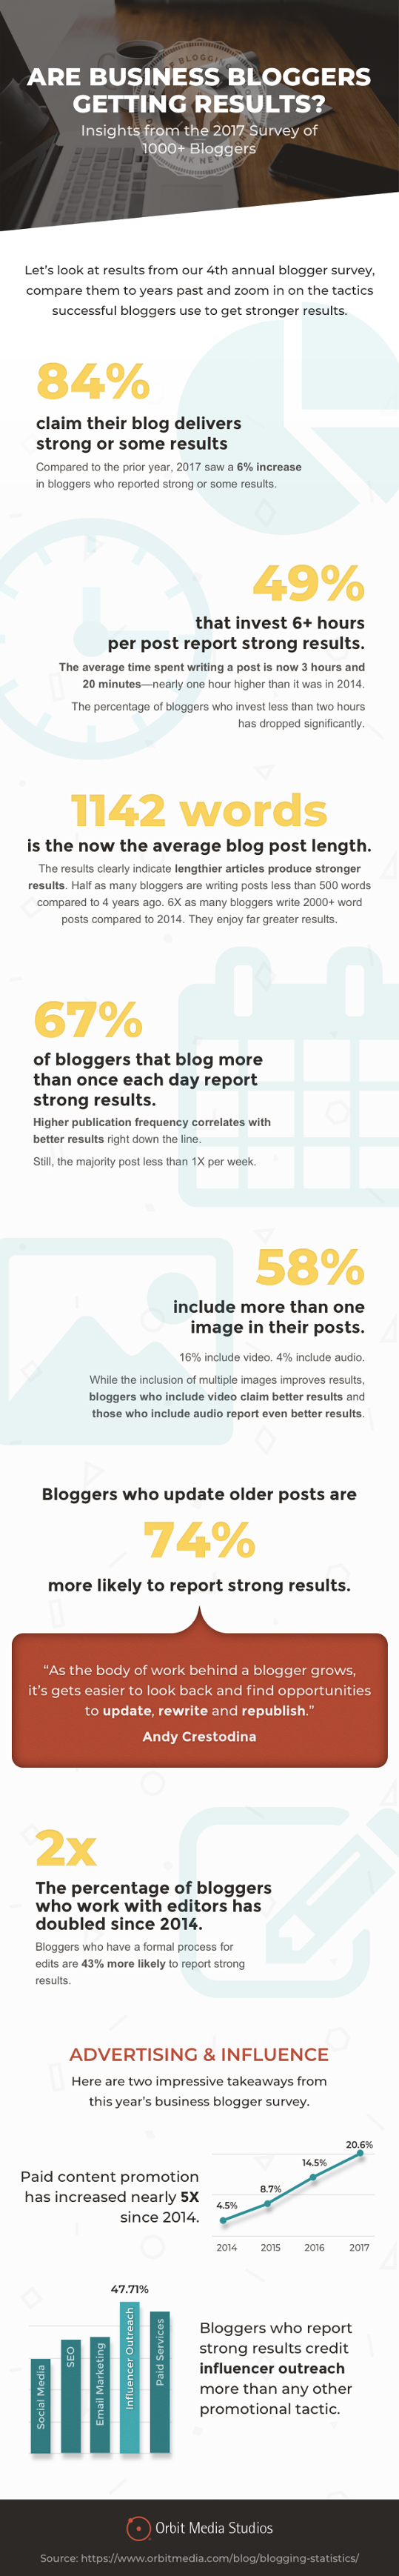 Infographic: Business Blogging